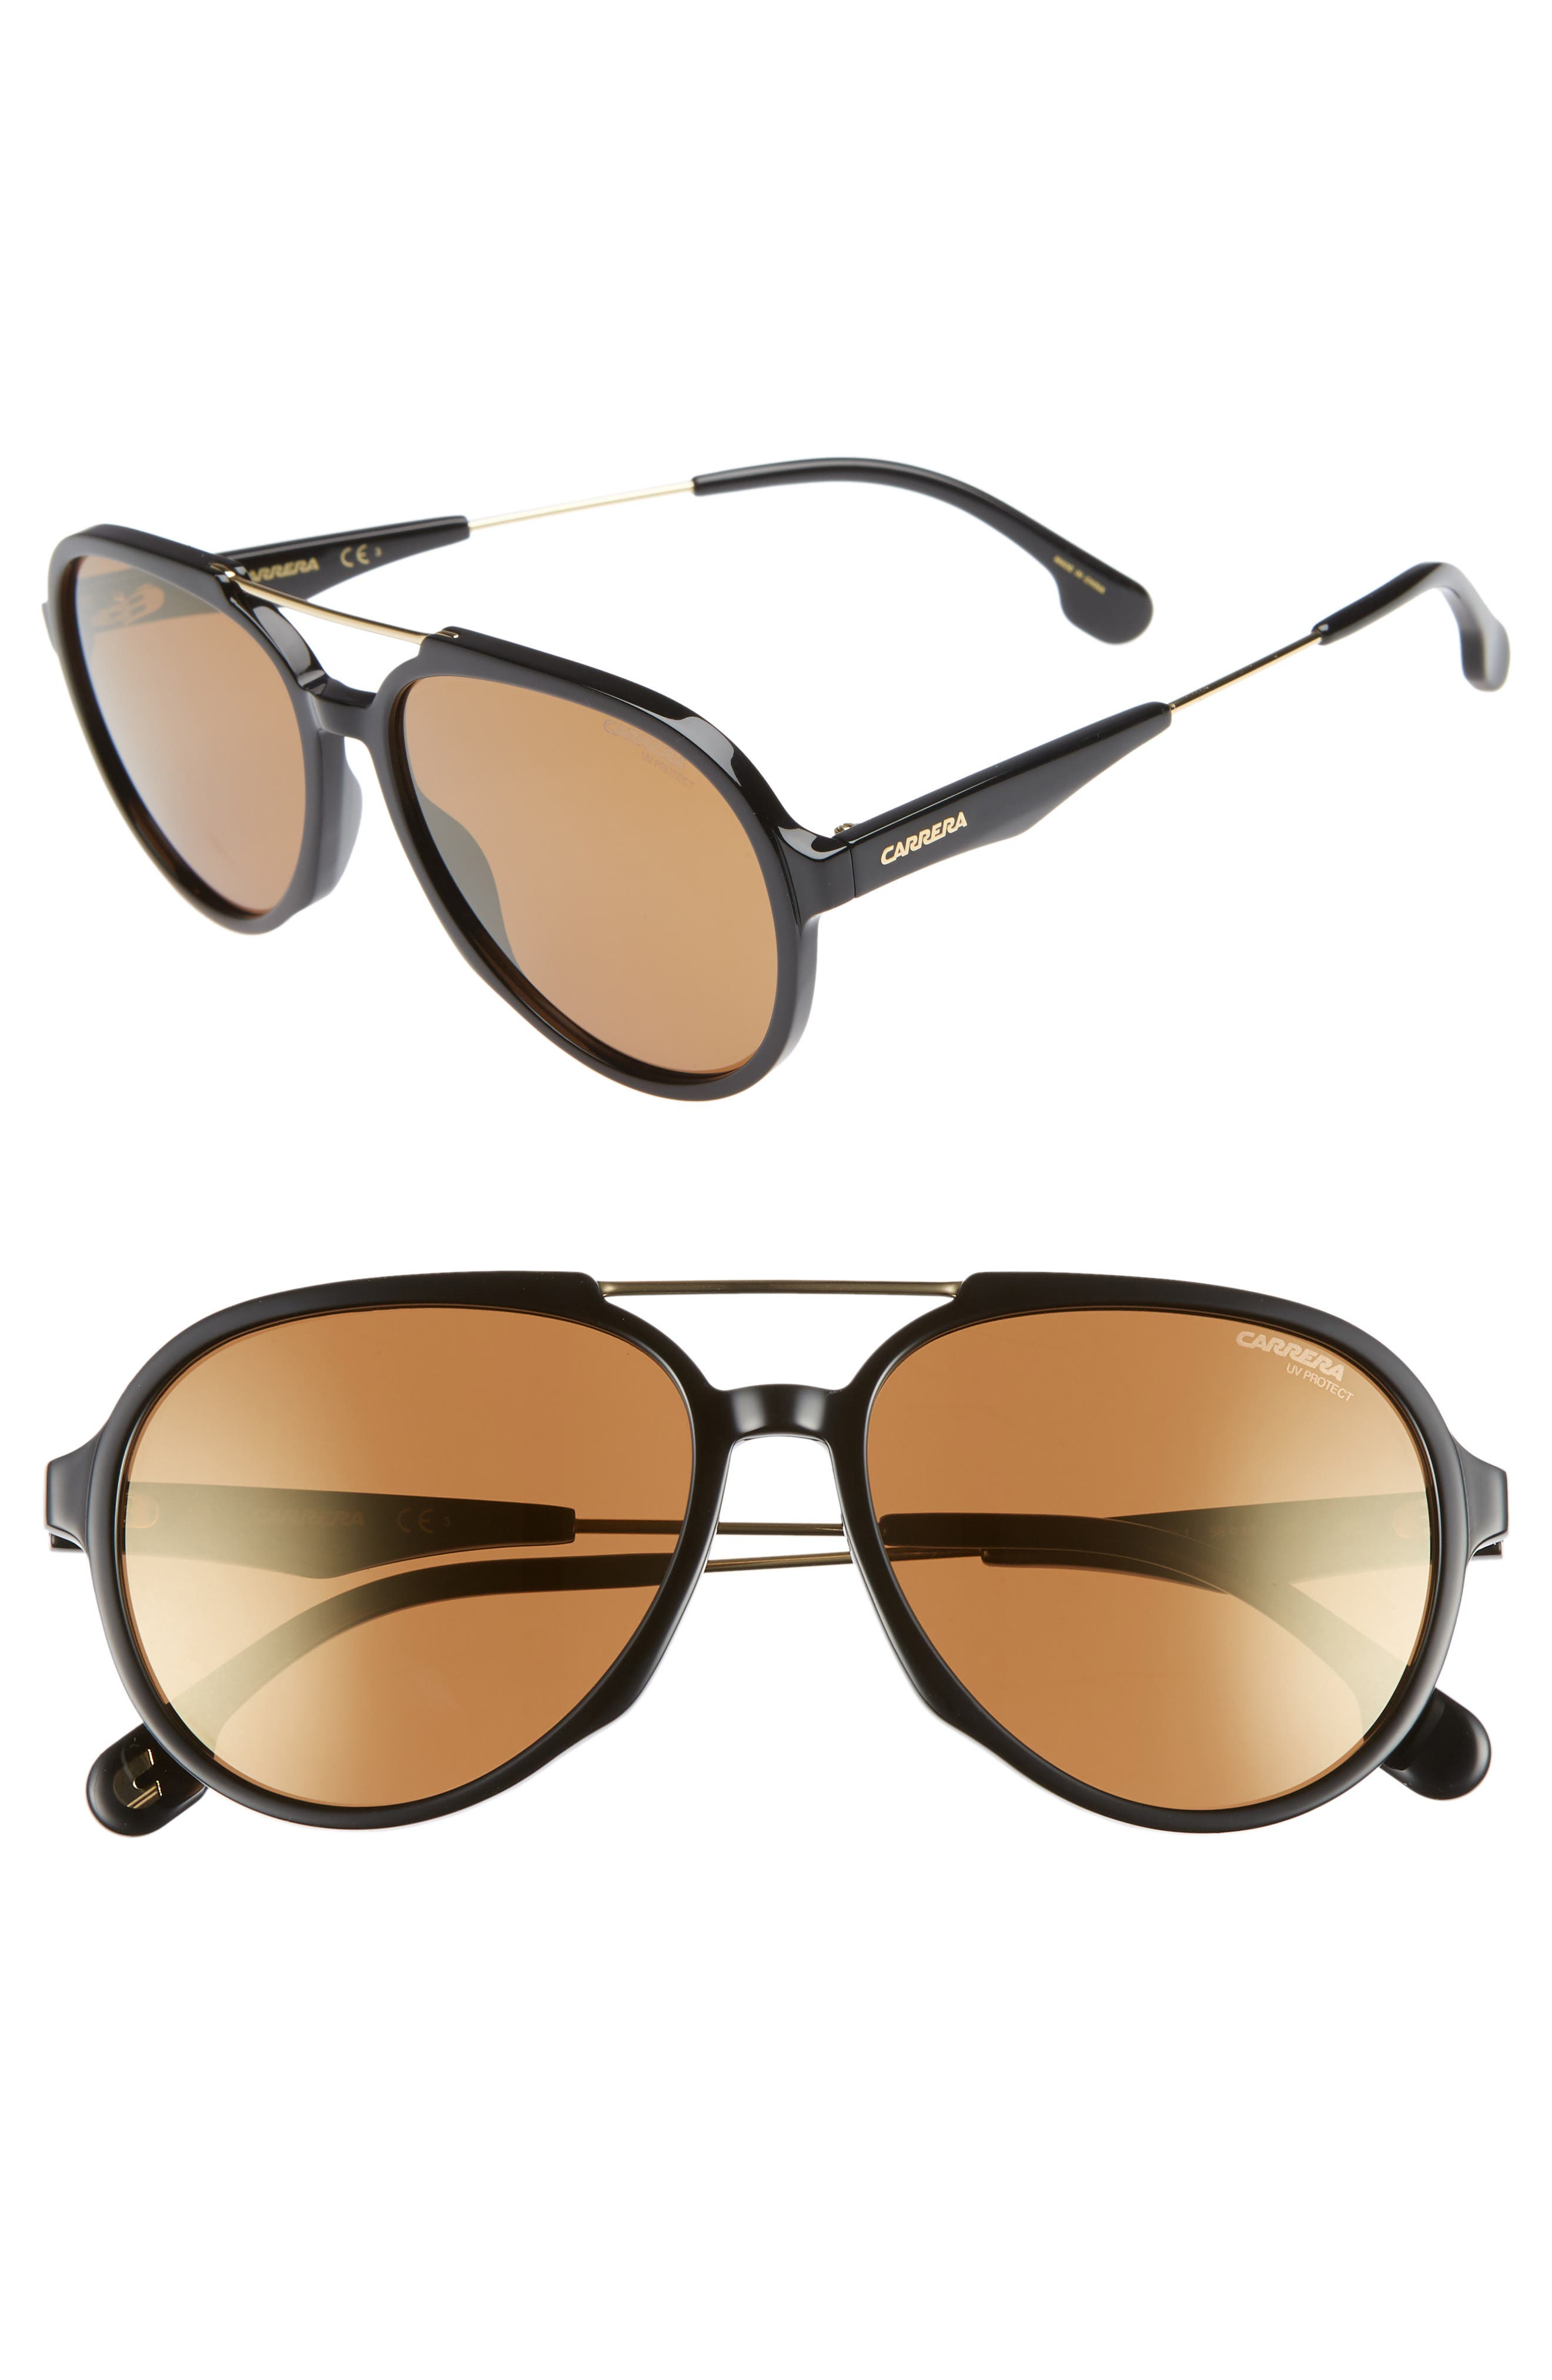 56mm Aviator Sunglasses,                             Main thumbnail 1, color,                             BLACK